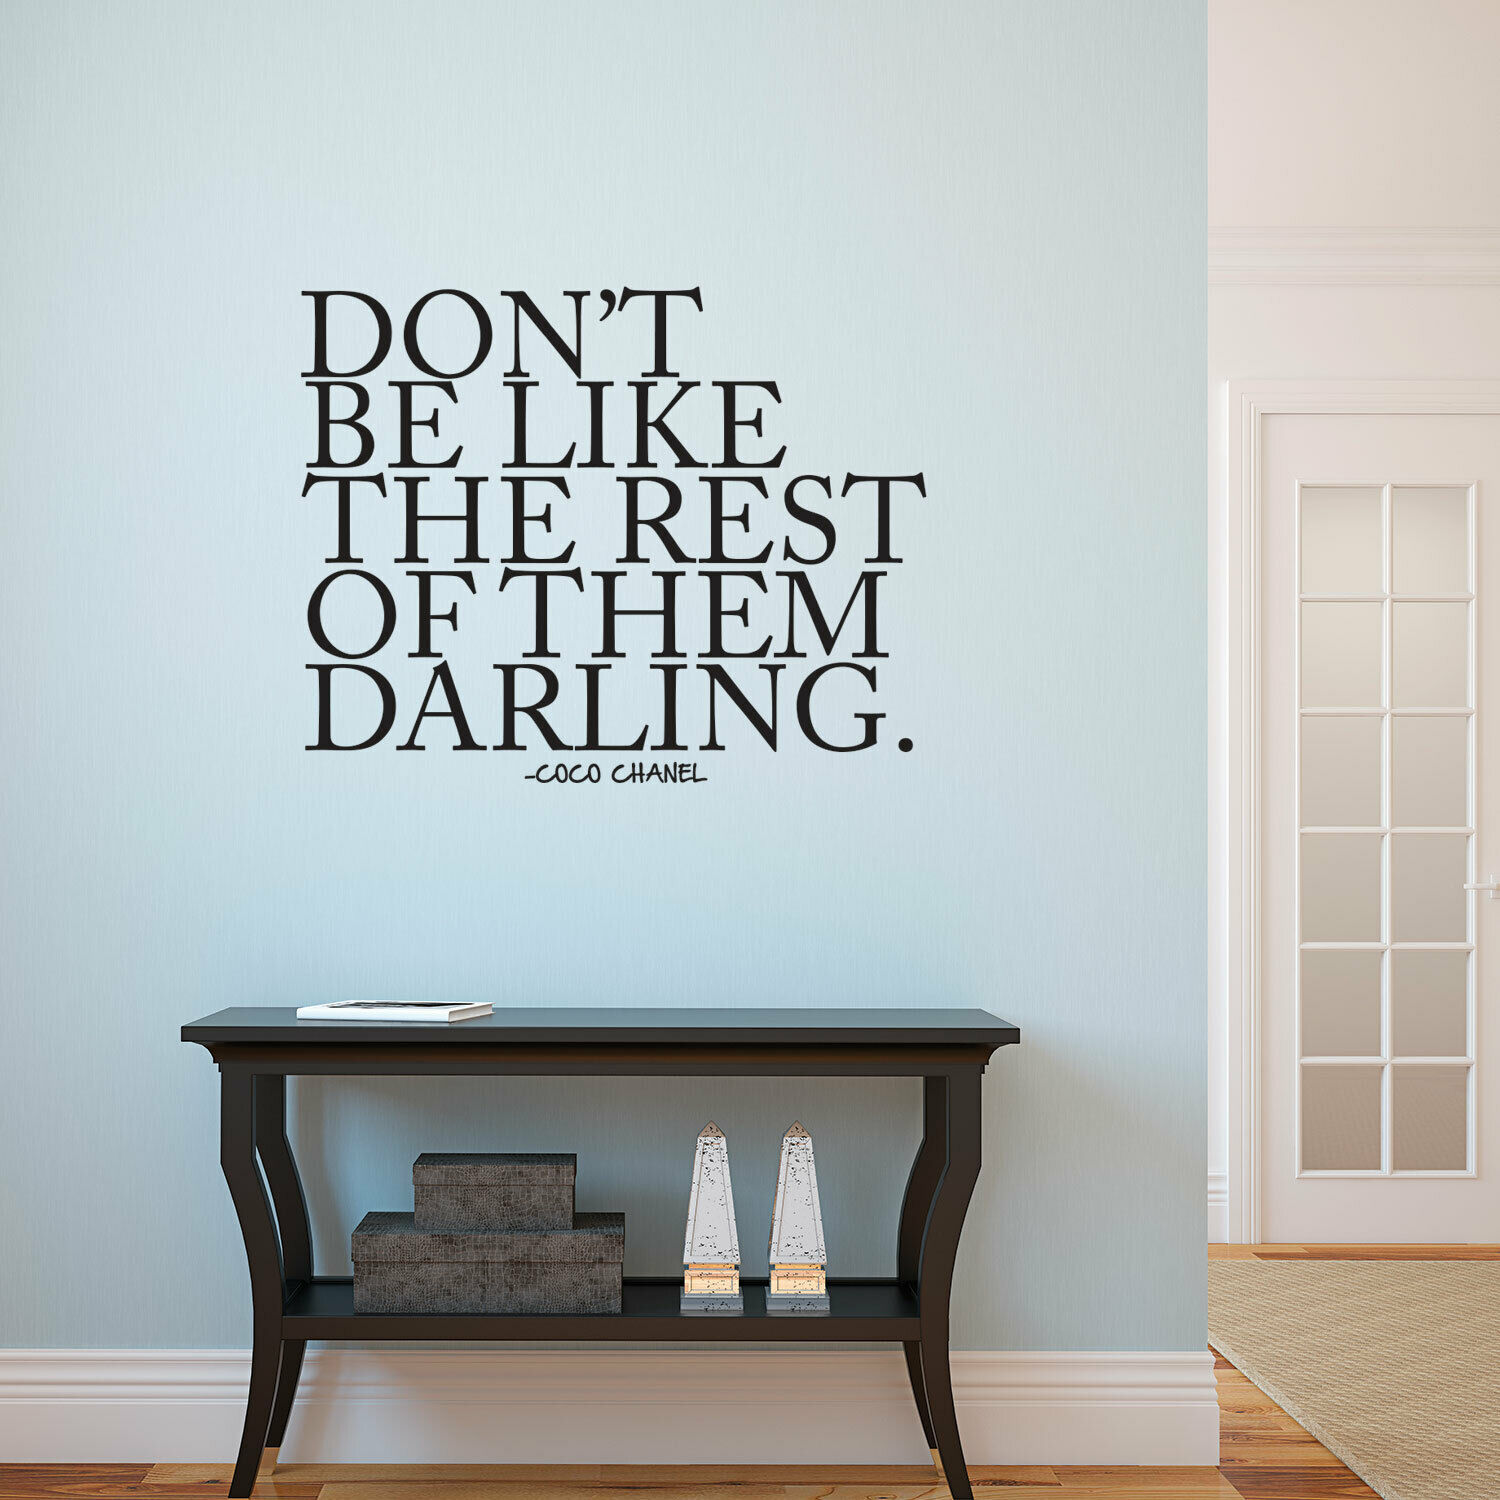 Don T Be Like The Rest Of Them Darling Coco Chanel Inspirational Quote Wall For Sale Online